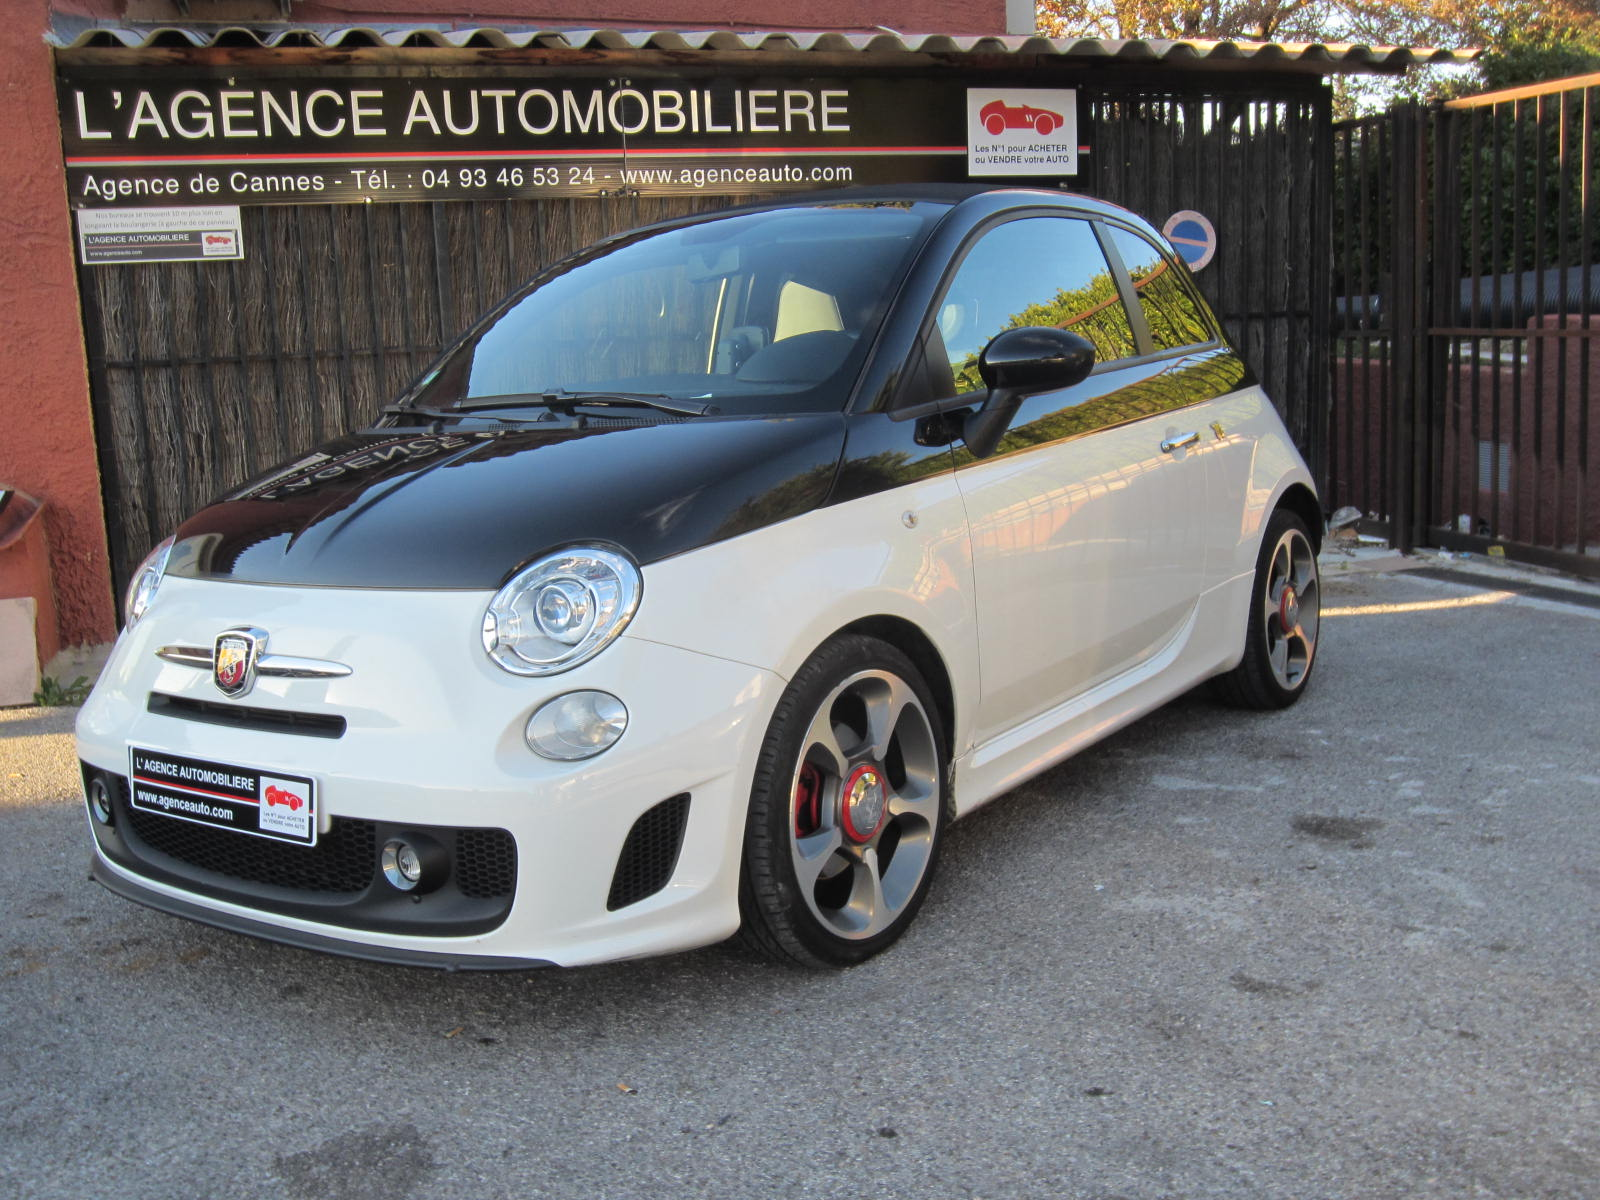 fiat 500 cabriolet abarth 1 4 t occasion cannes pas cher voiture occasion alpes maritimes 06250. Black Bedroom Furniture Sets. Home Design Ideas